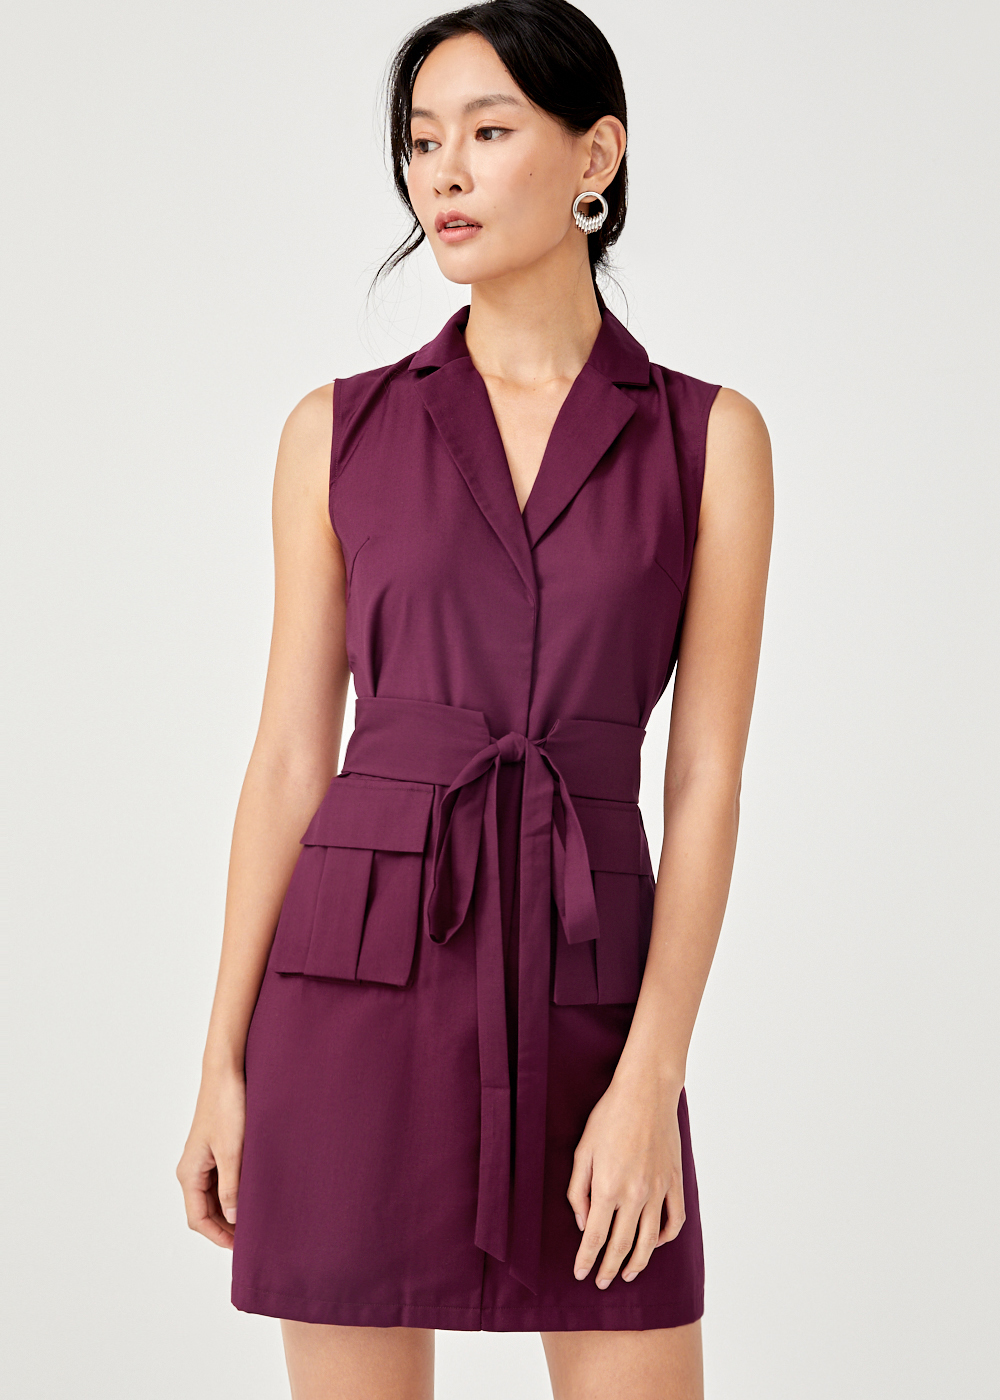 Oralie Front Pocket Tuxedo Dress